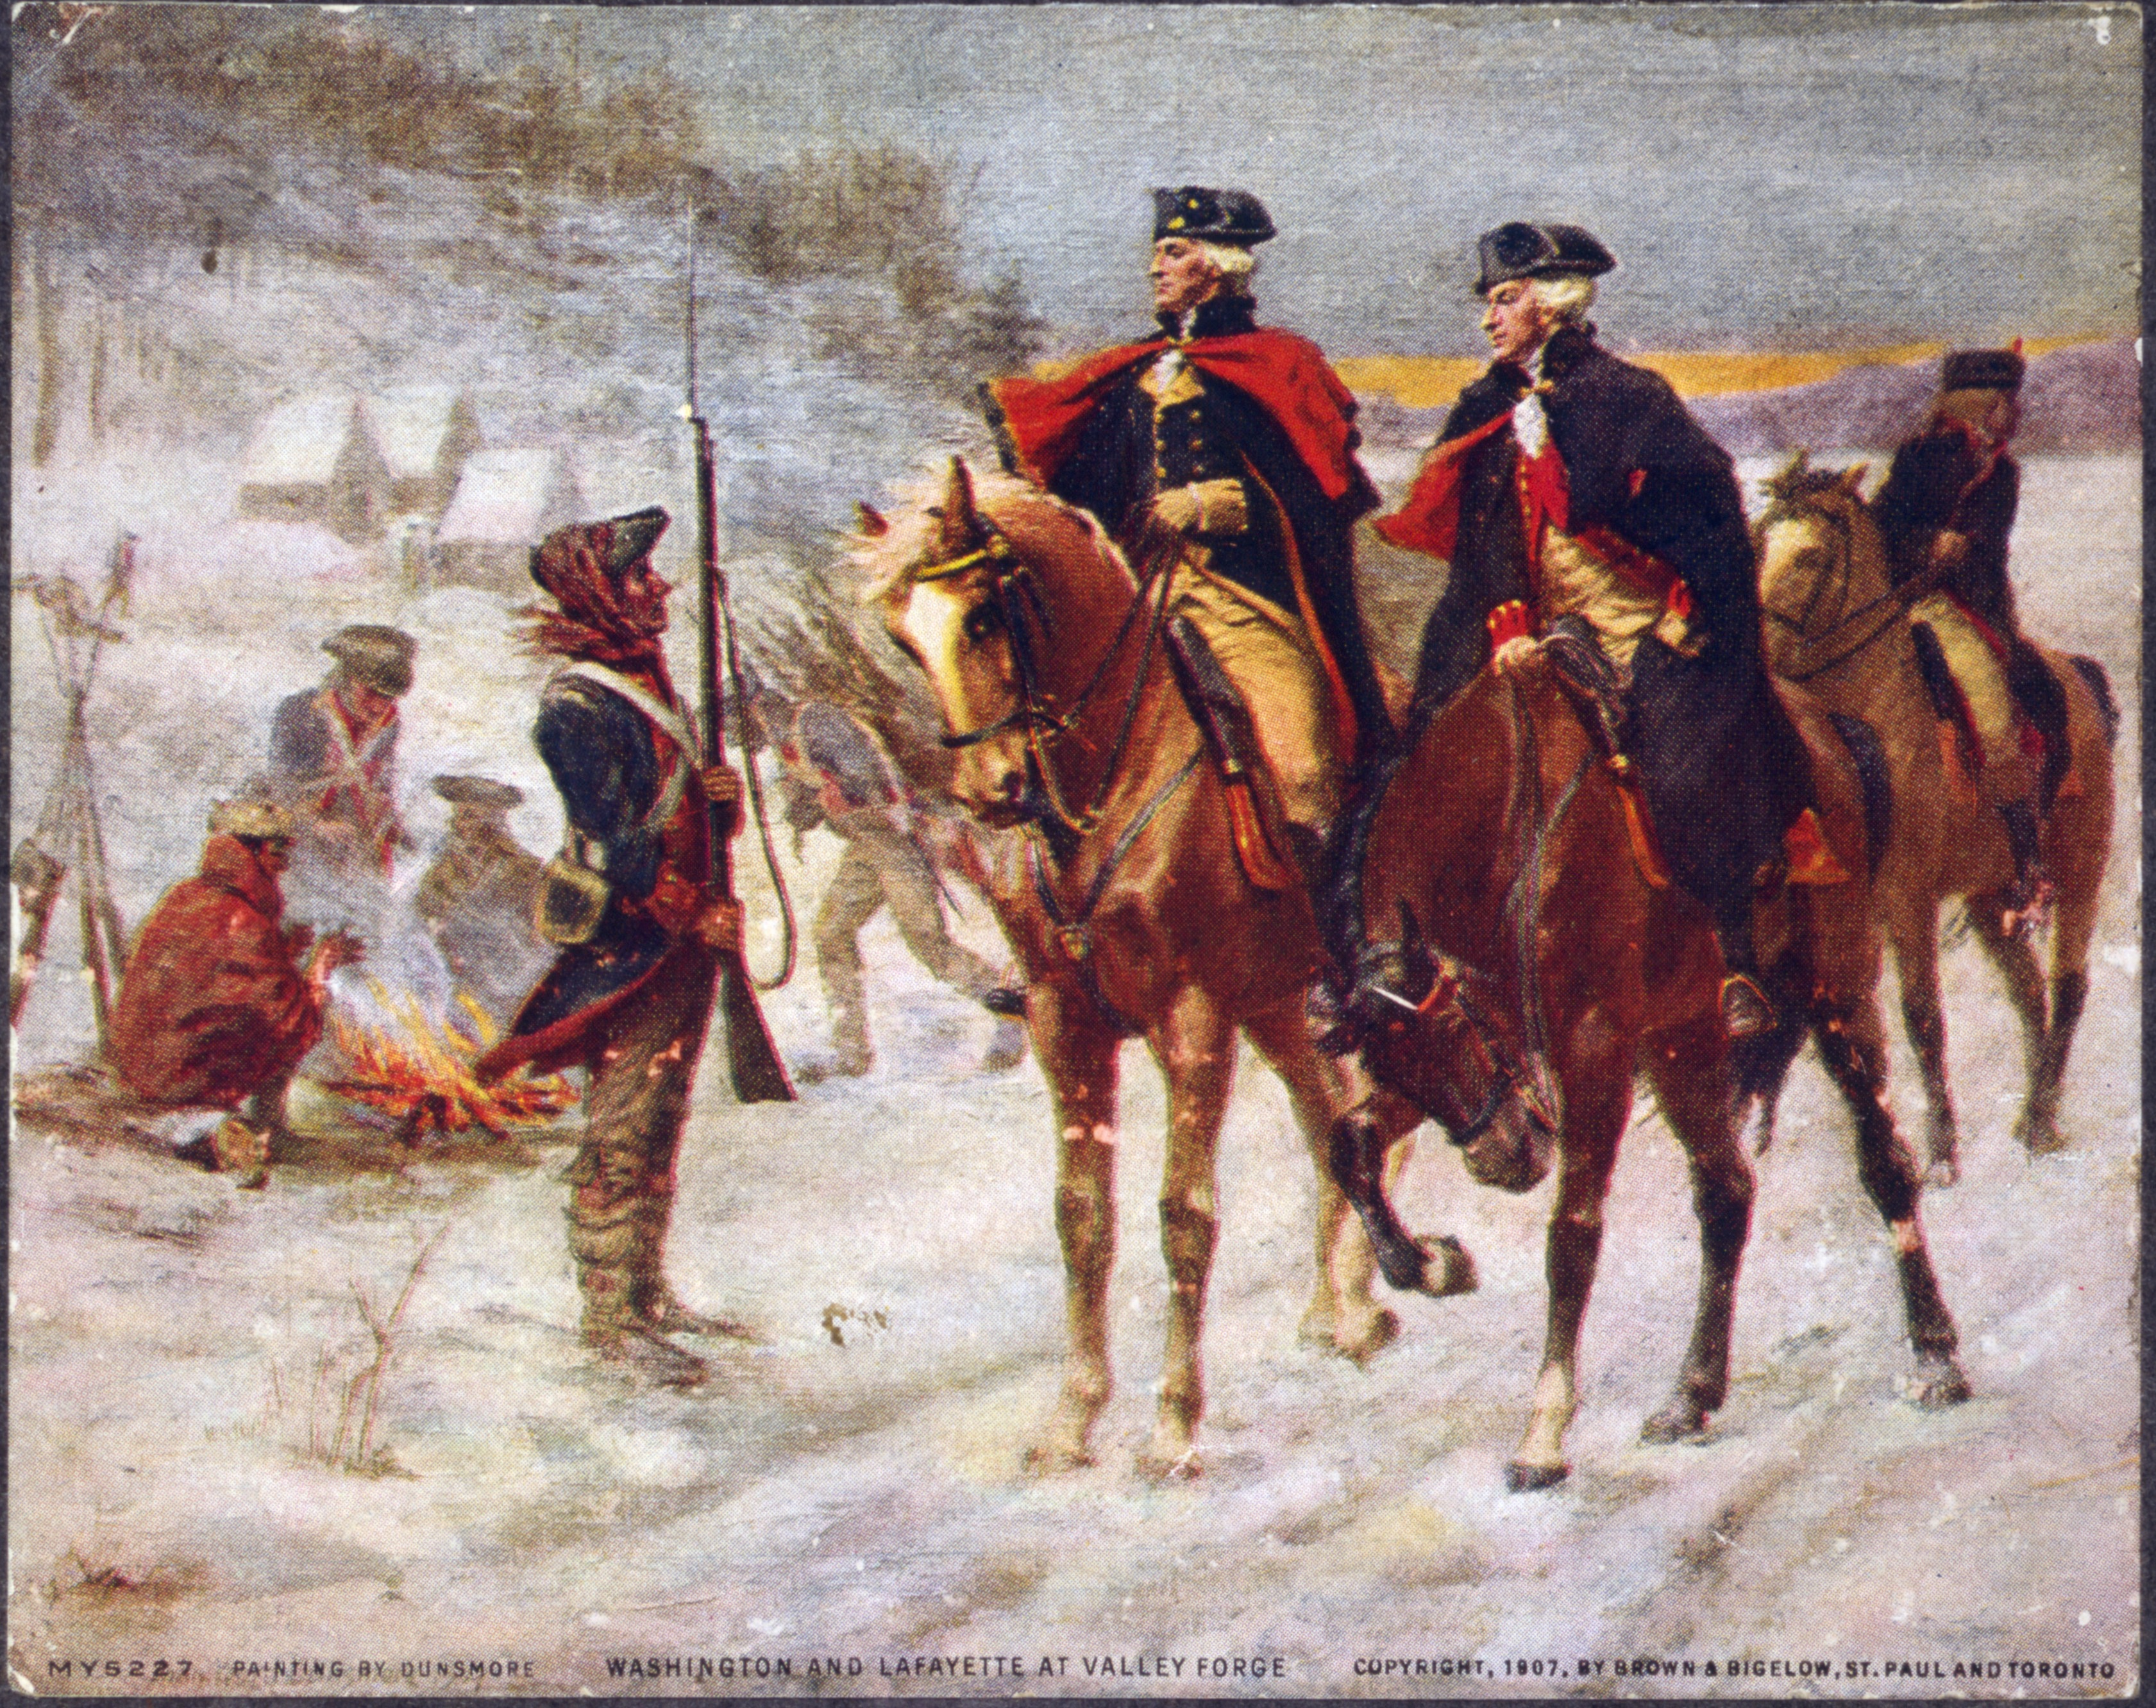 John Ward Dunsmore's depiction of Lafayette (right) and Washington at Valley Forge, painted in 1907.